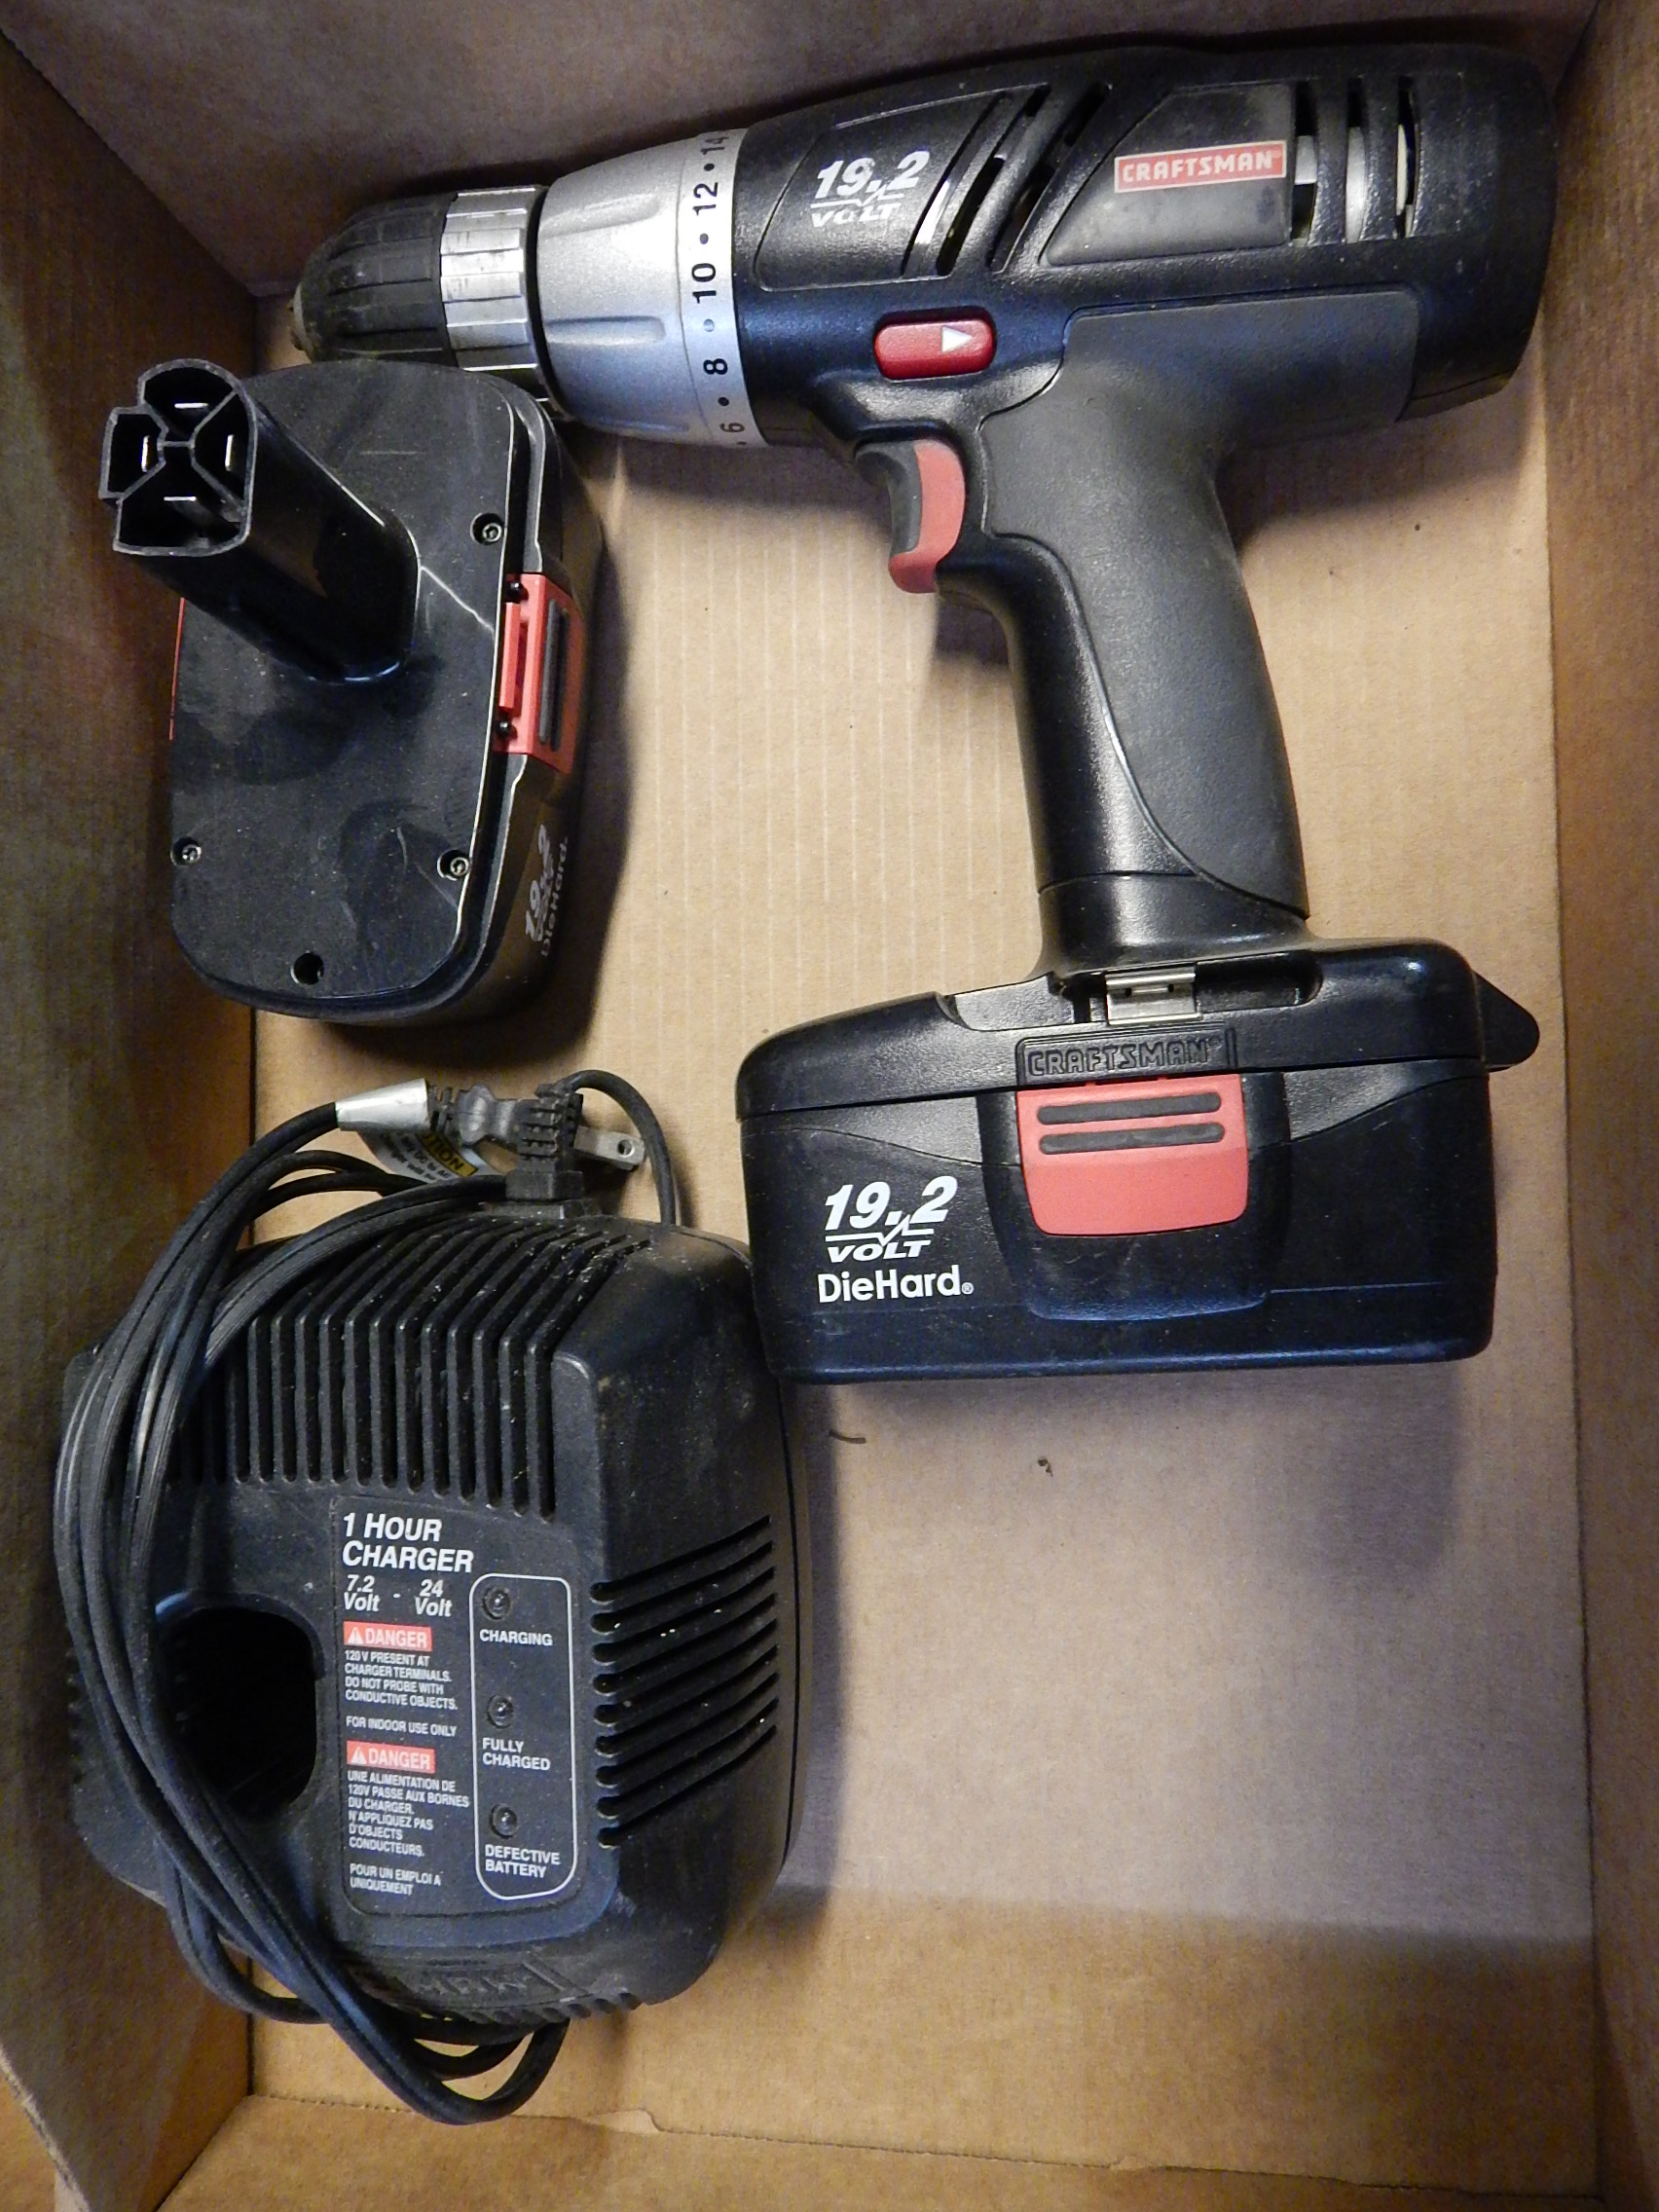 Lot 41 - Craftsman 19.2V Cordless Drill w/ (2) Batteries and Charger